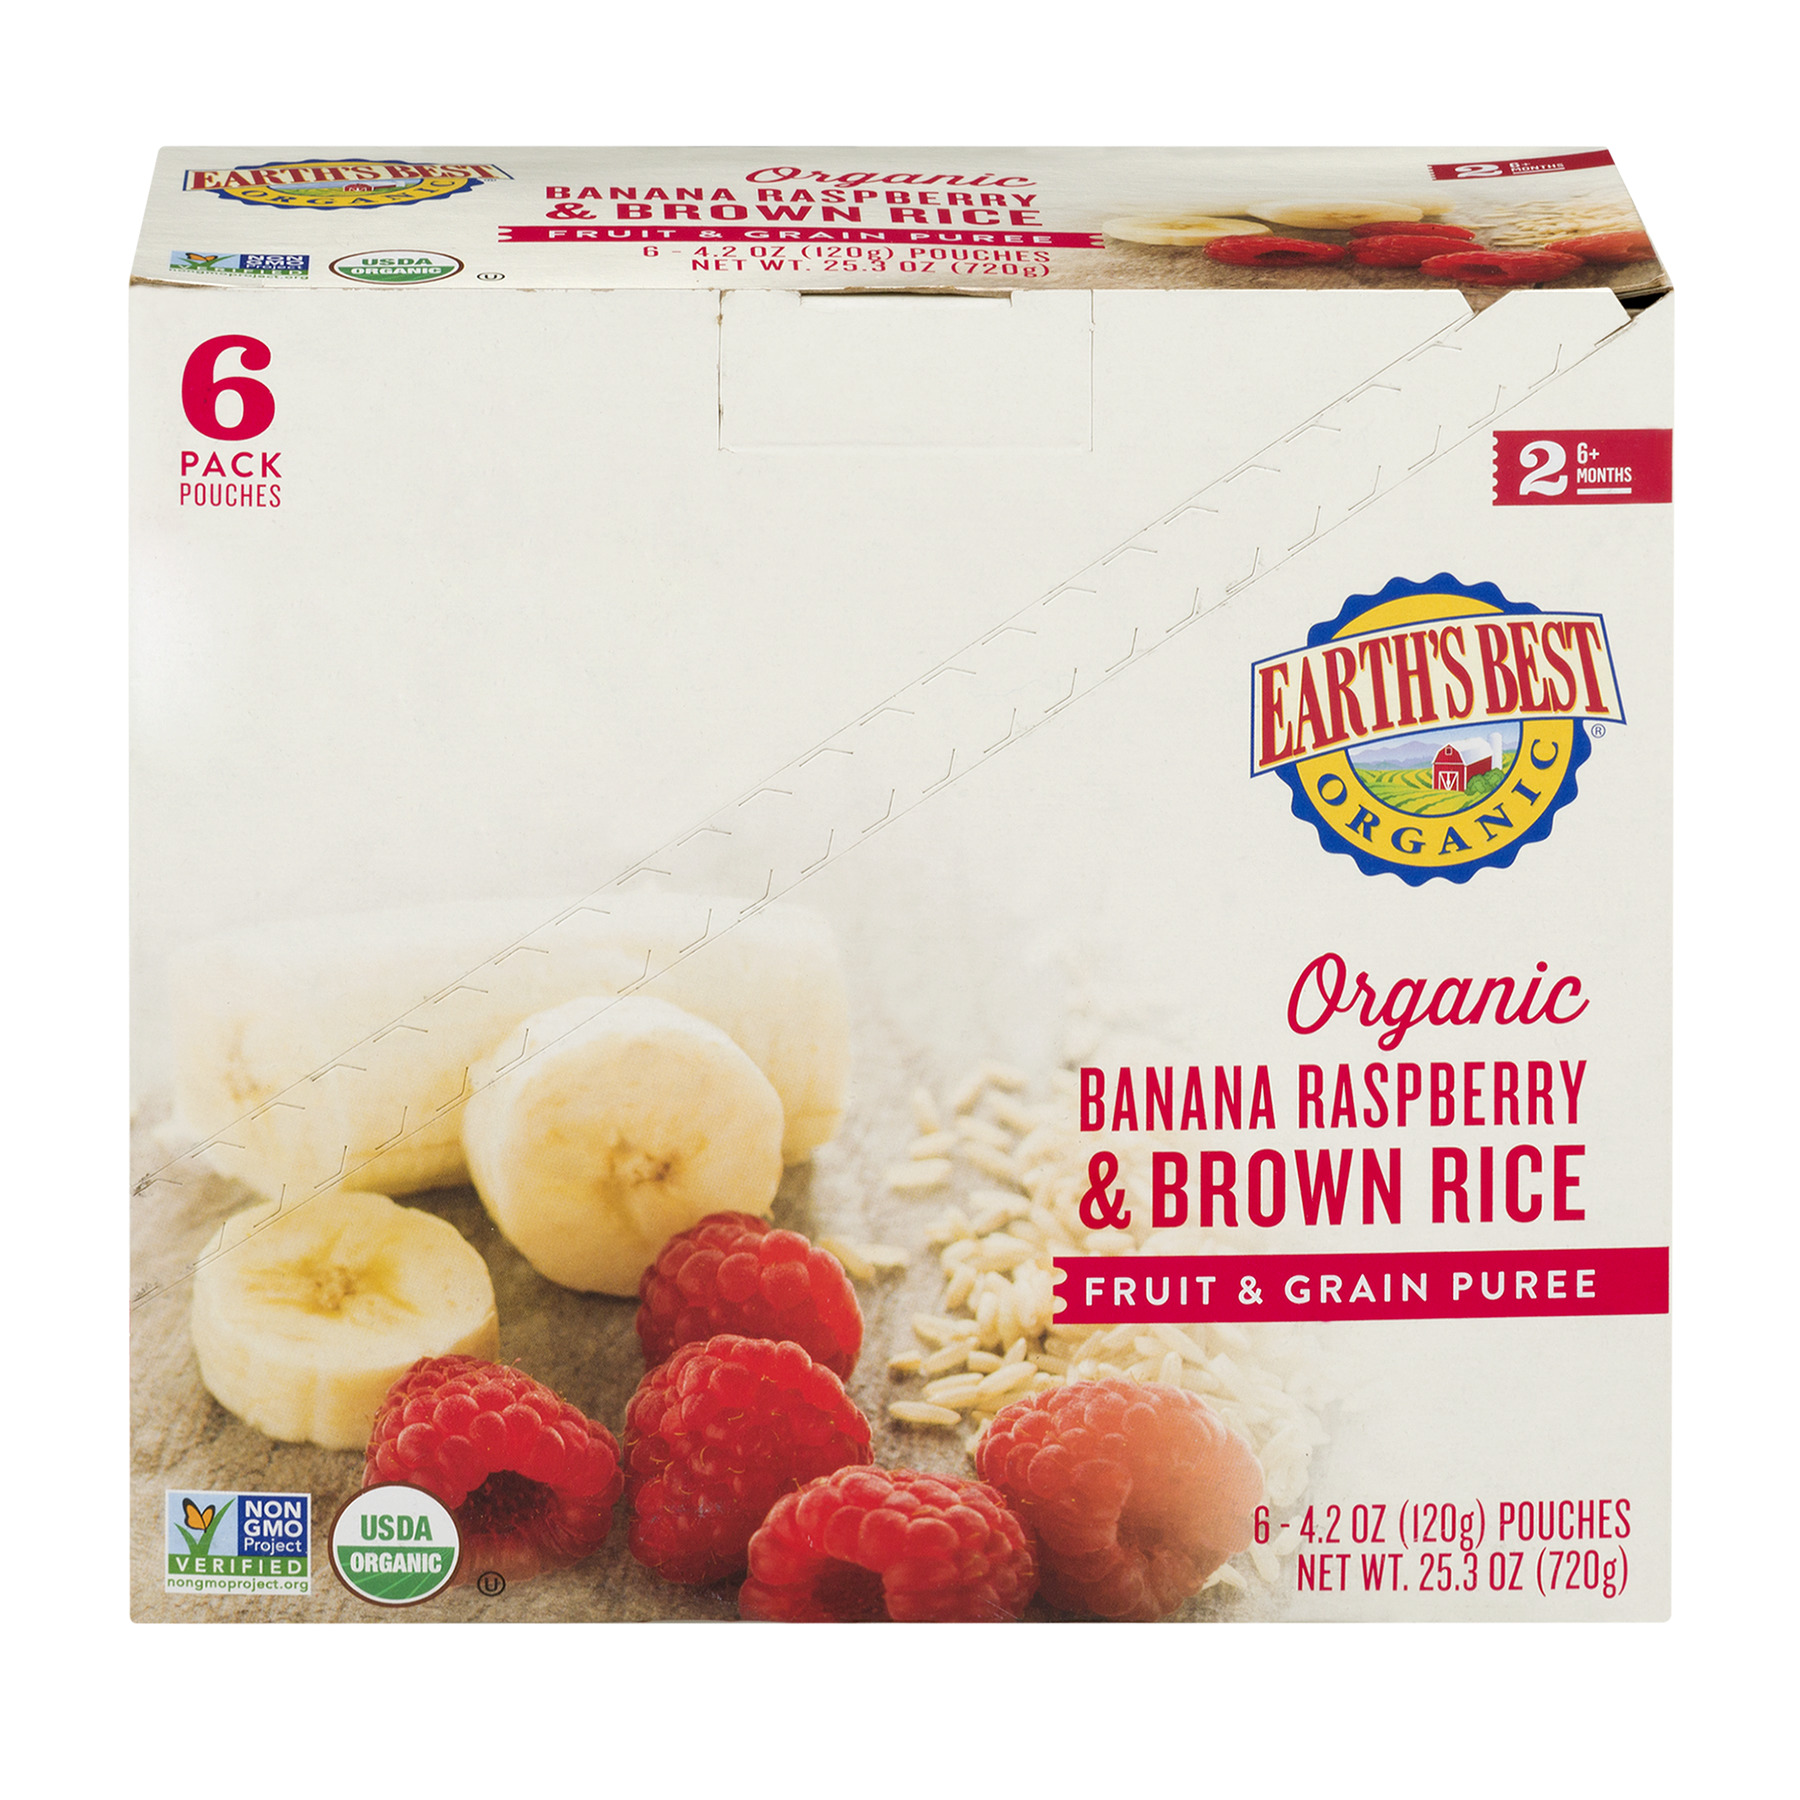 Earth's Best Organic Banana Raspberry & Brown Rice Fruit & Grain Puree 6+ Months - 6 PK, 4.2 OZ